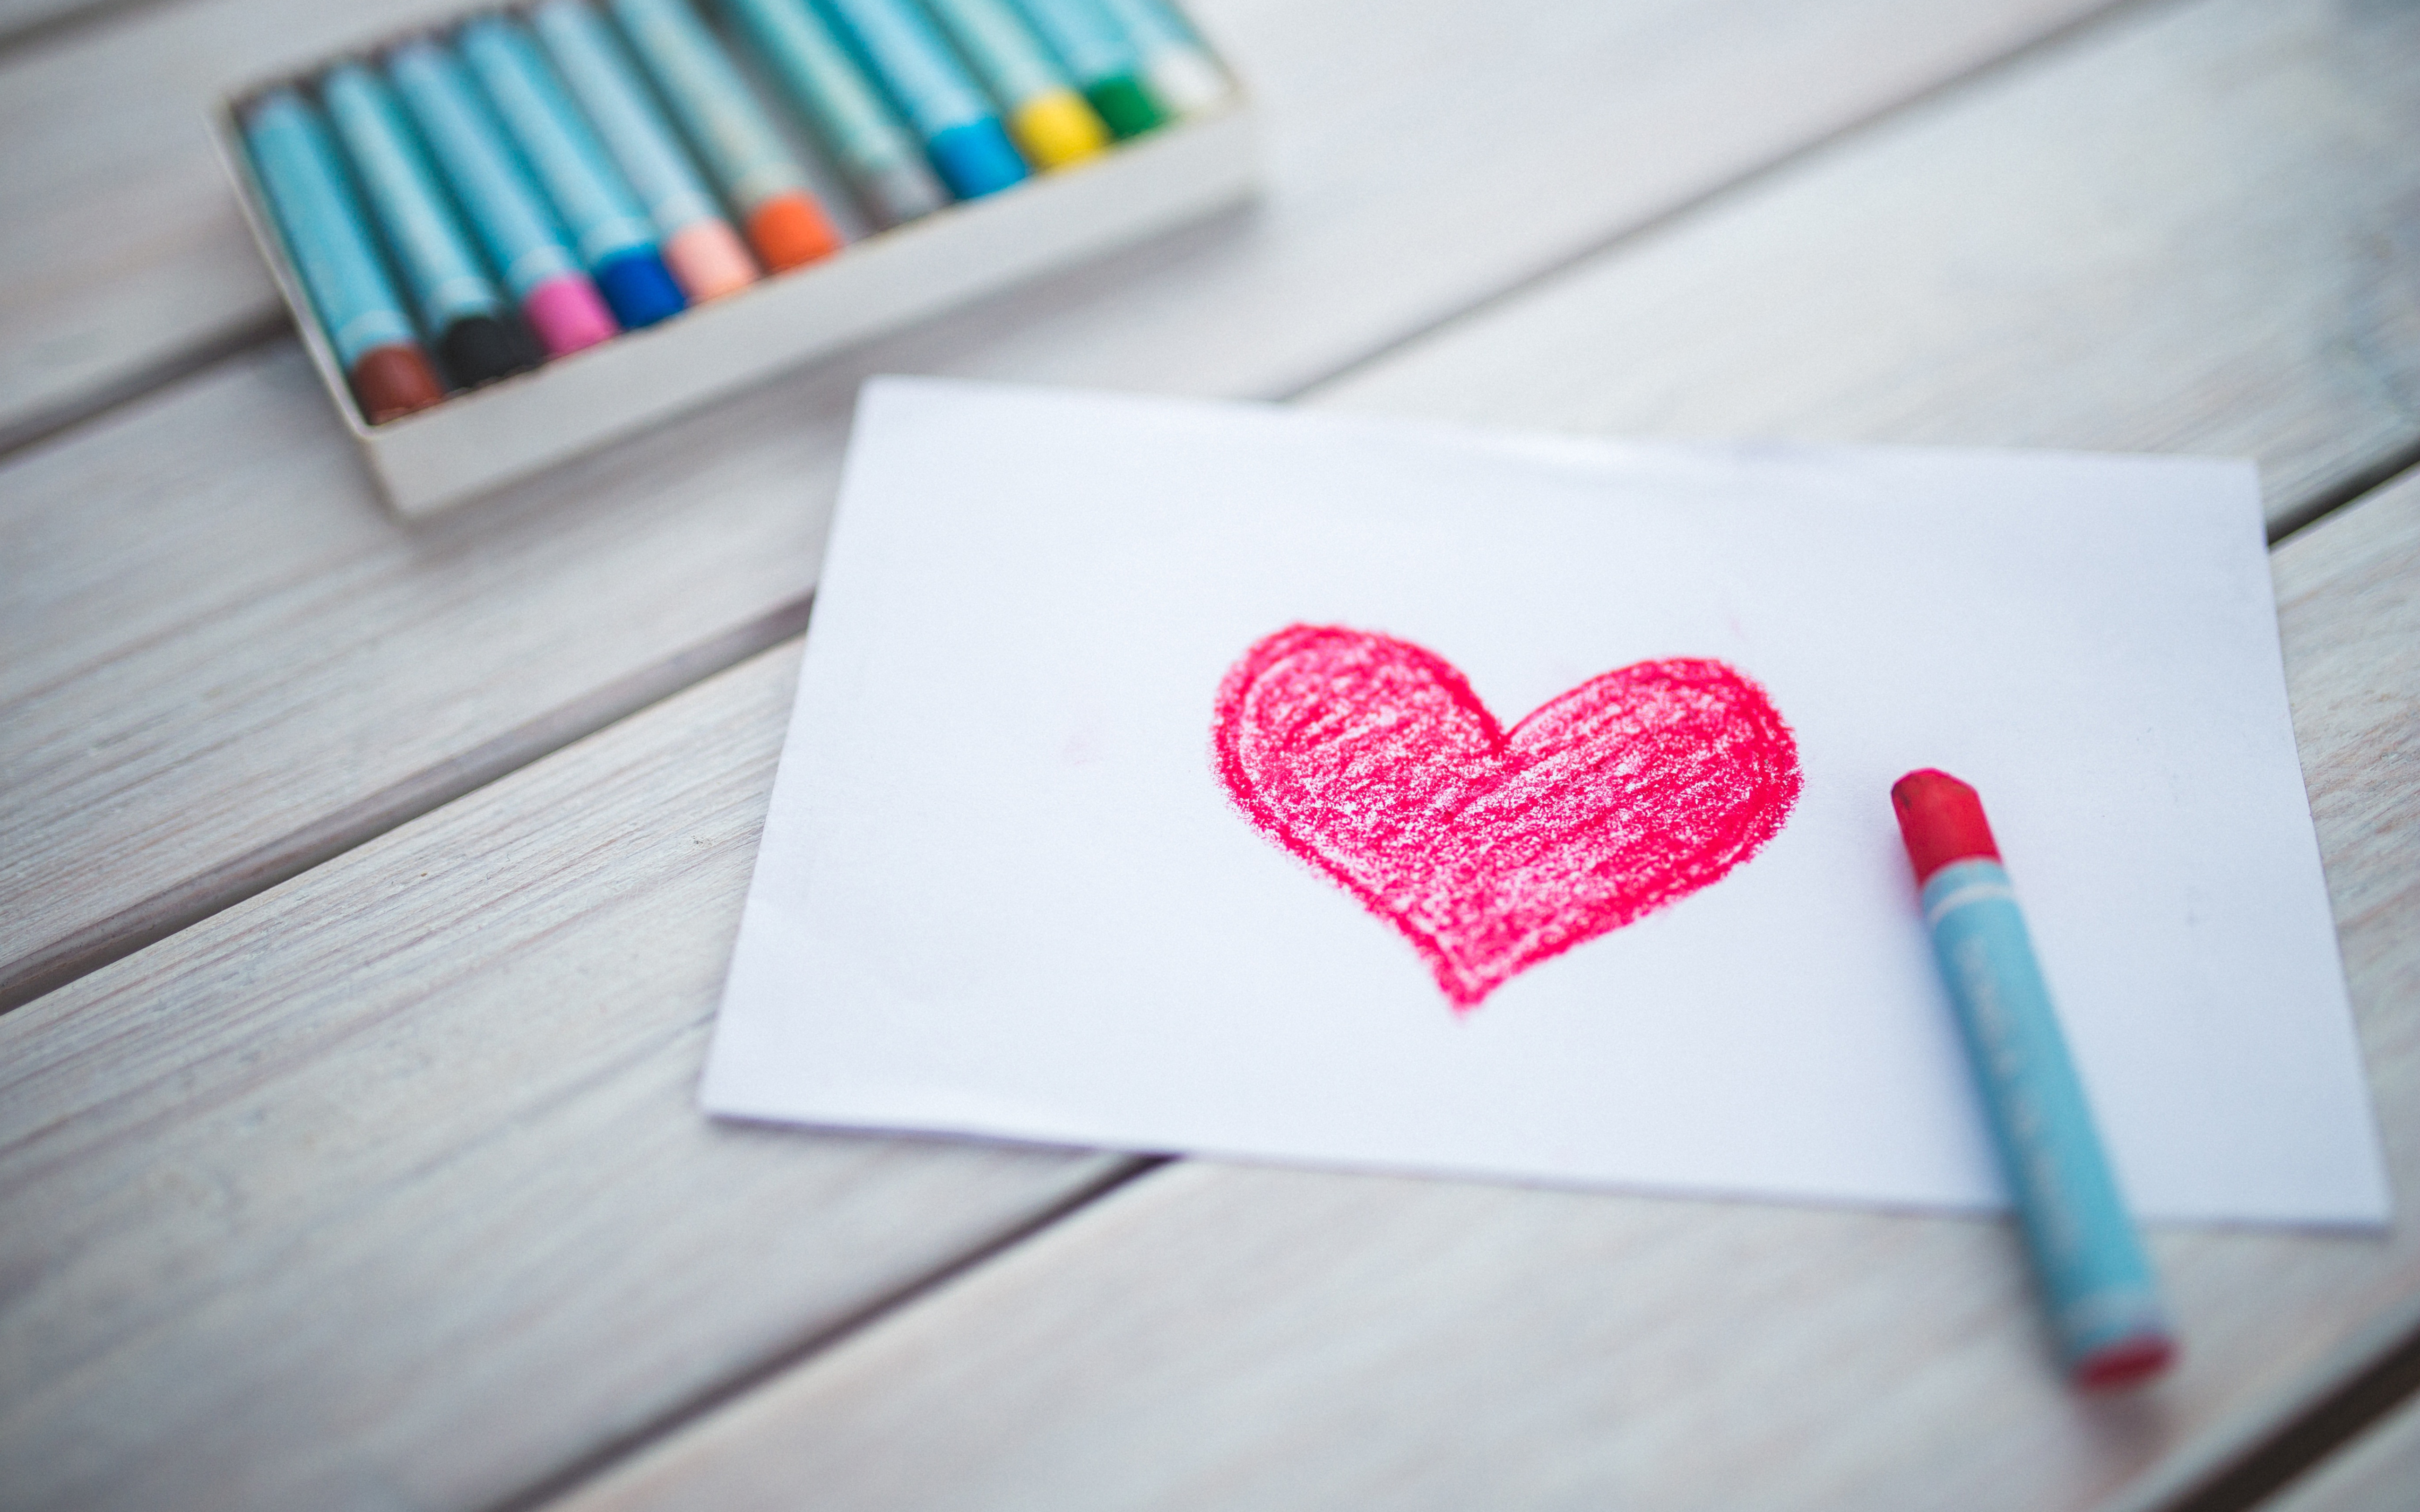 heart-and-crayons-5120x3200-wide-wallpapers_net.jpg